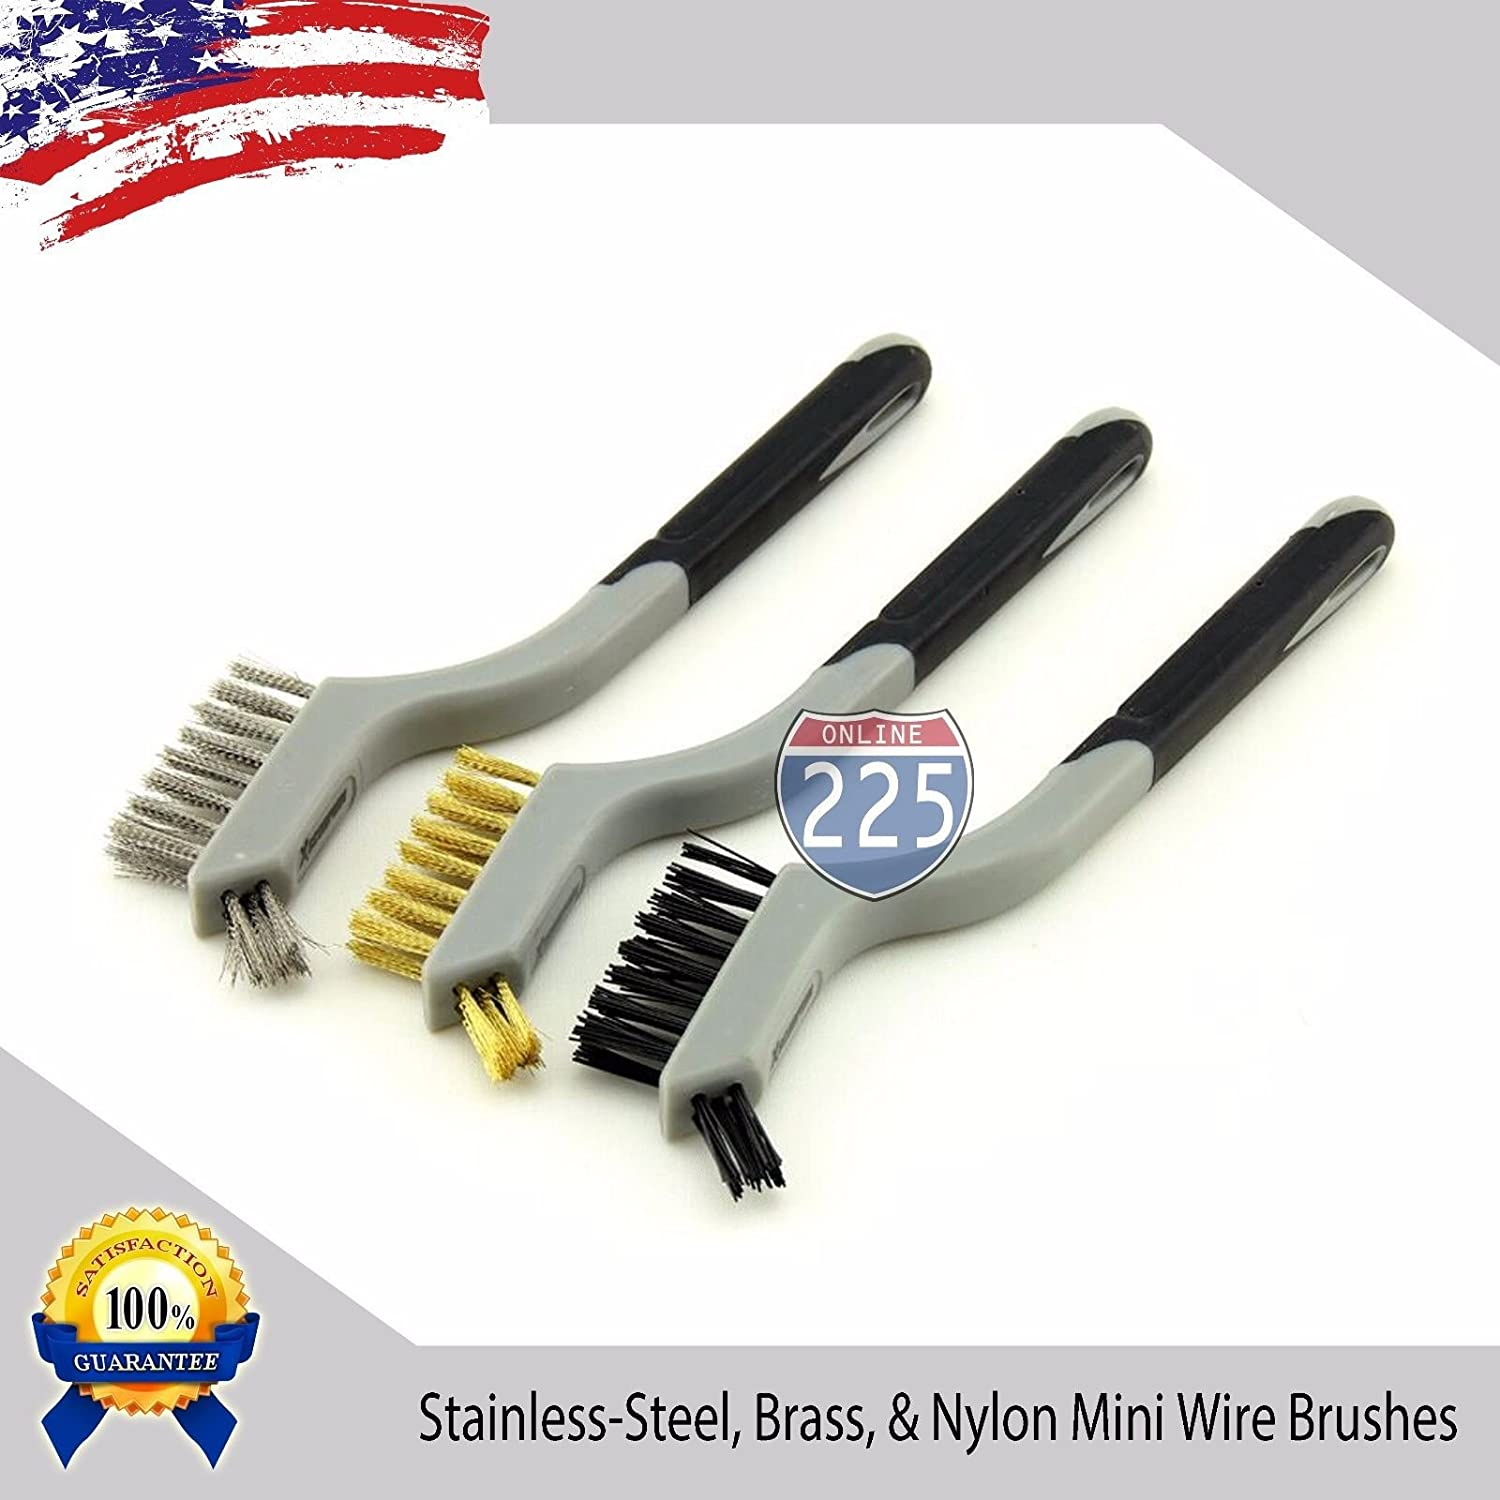 MINI WIRE BRUSH STAINLESS STEEL,BRASS,NYLON CLEANING DETAIL BRUSHES 3 PC